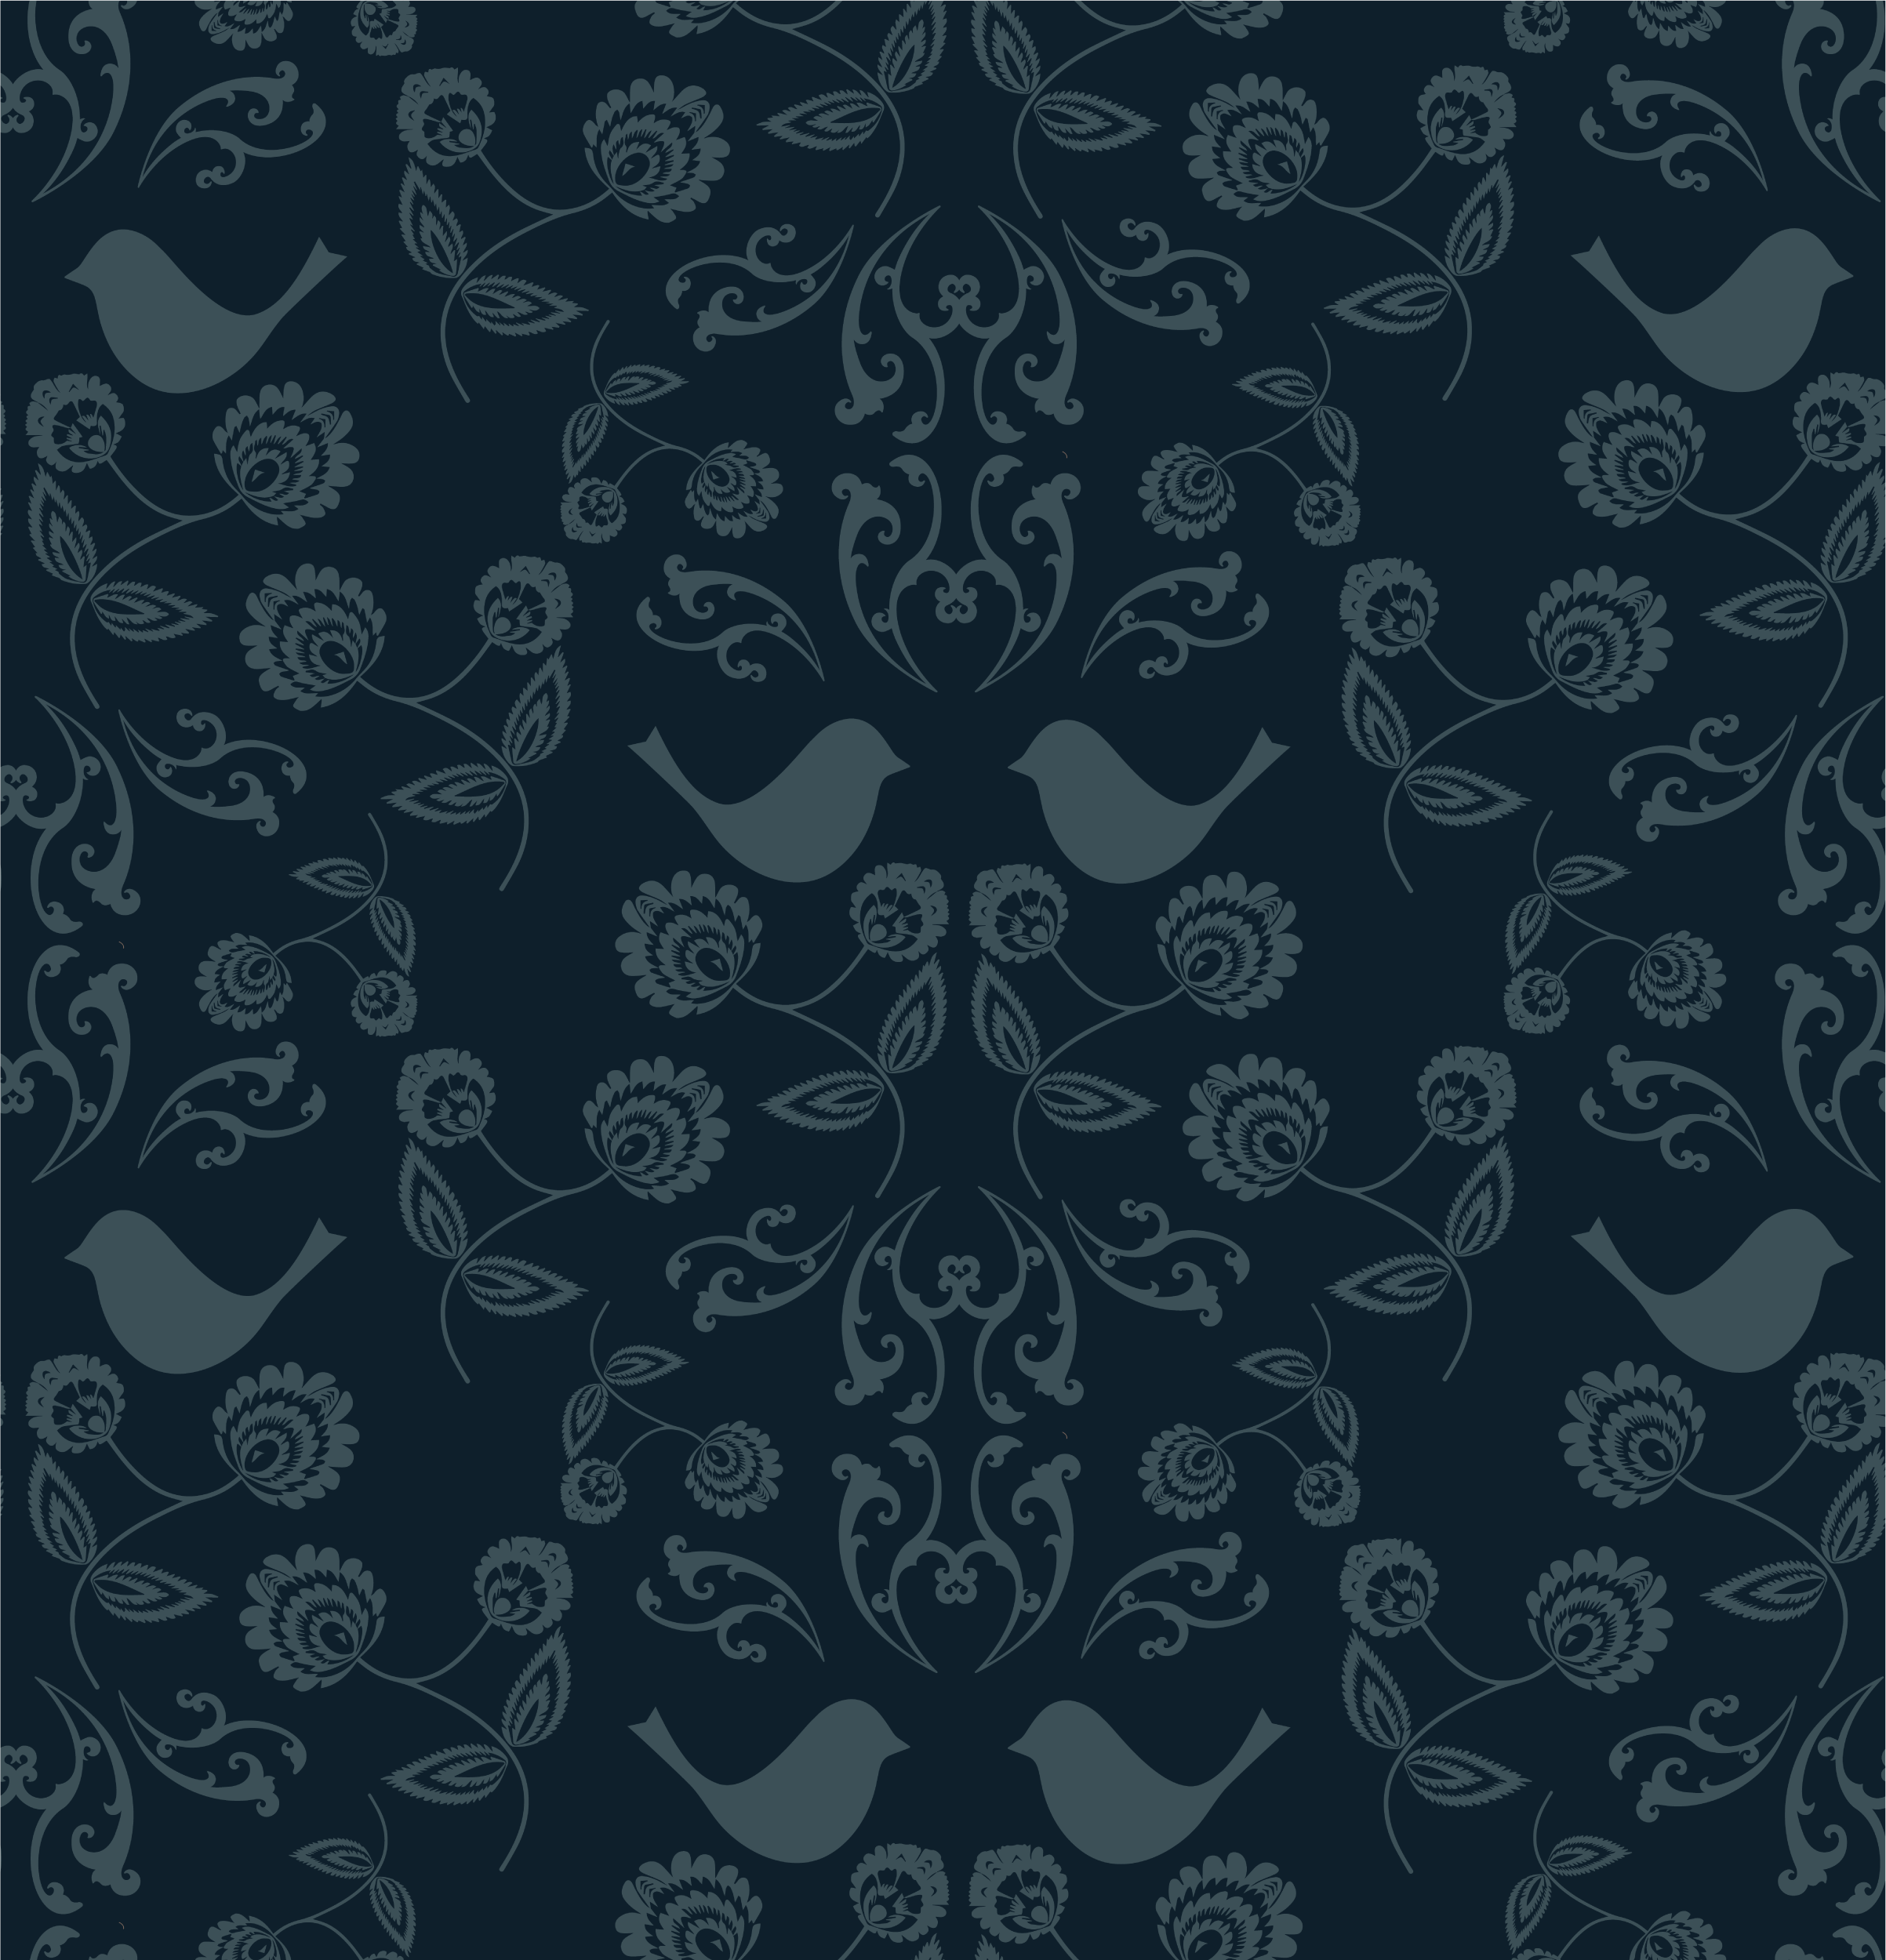 for-web-Navy-on-navy-Bird-Pattern-2.png